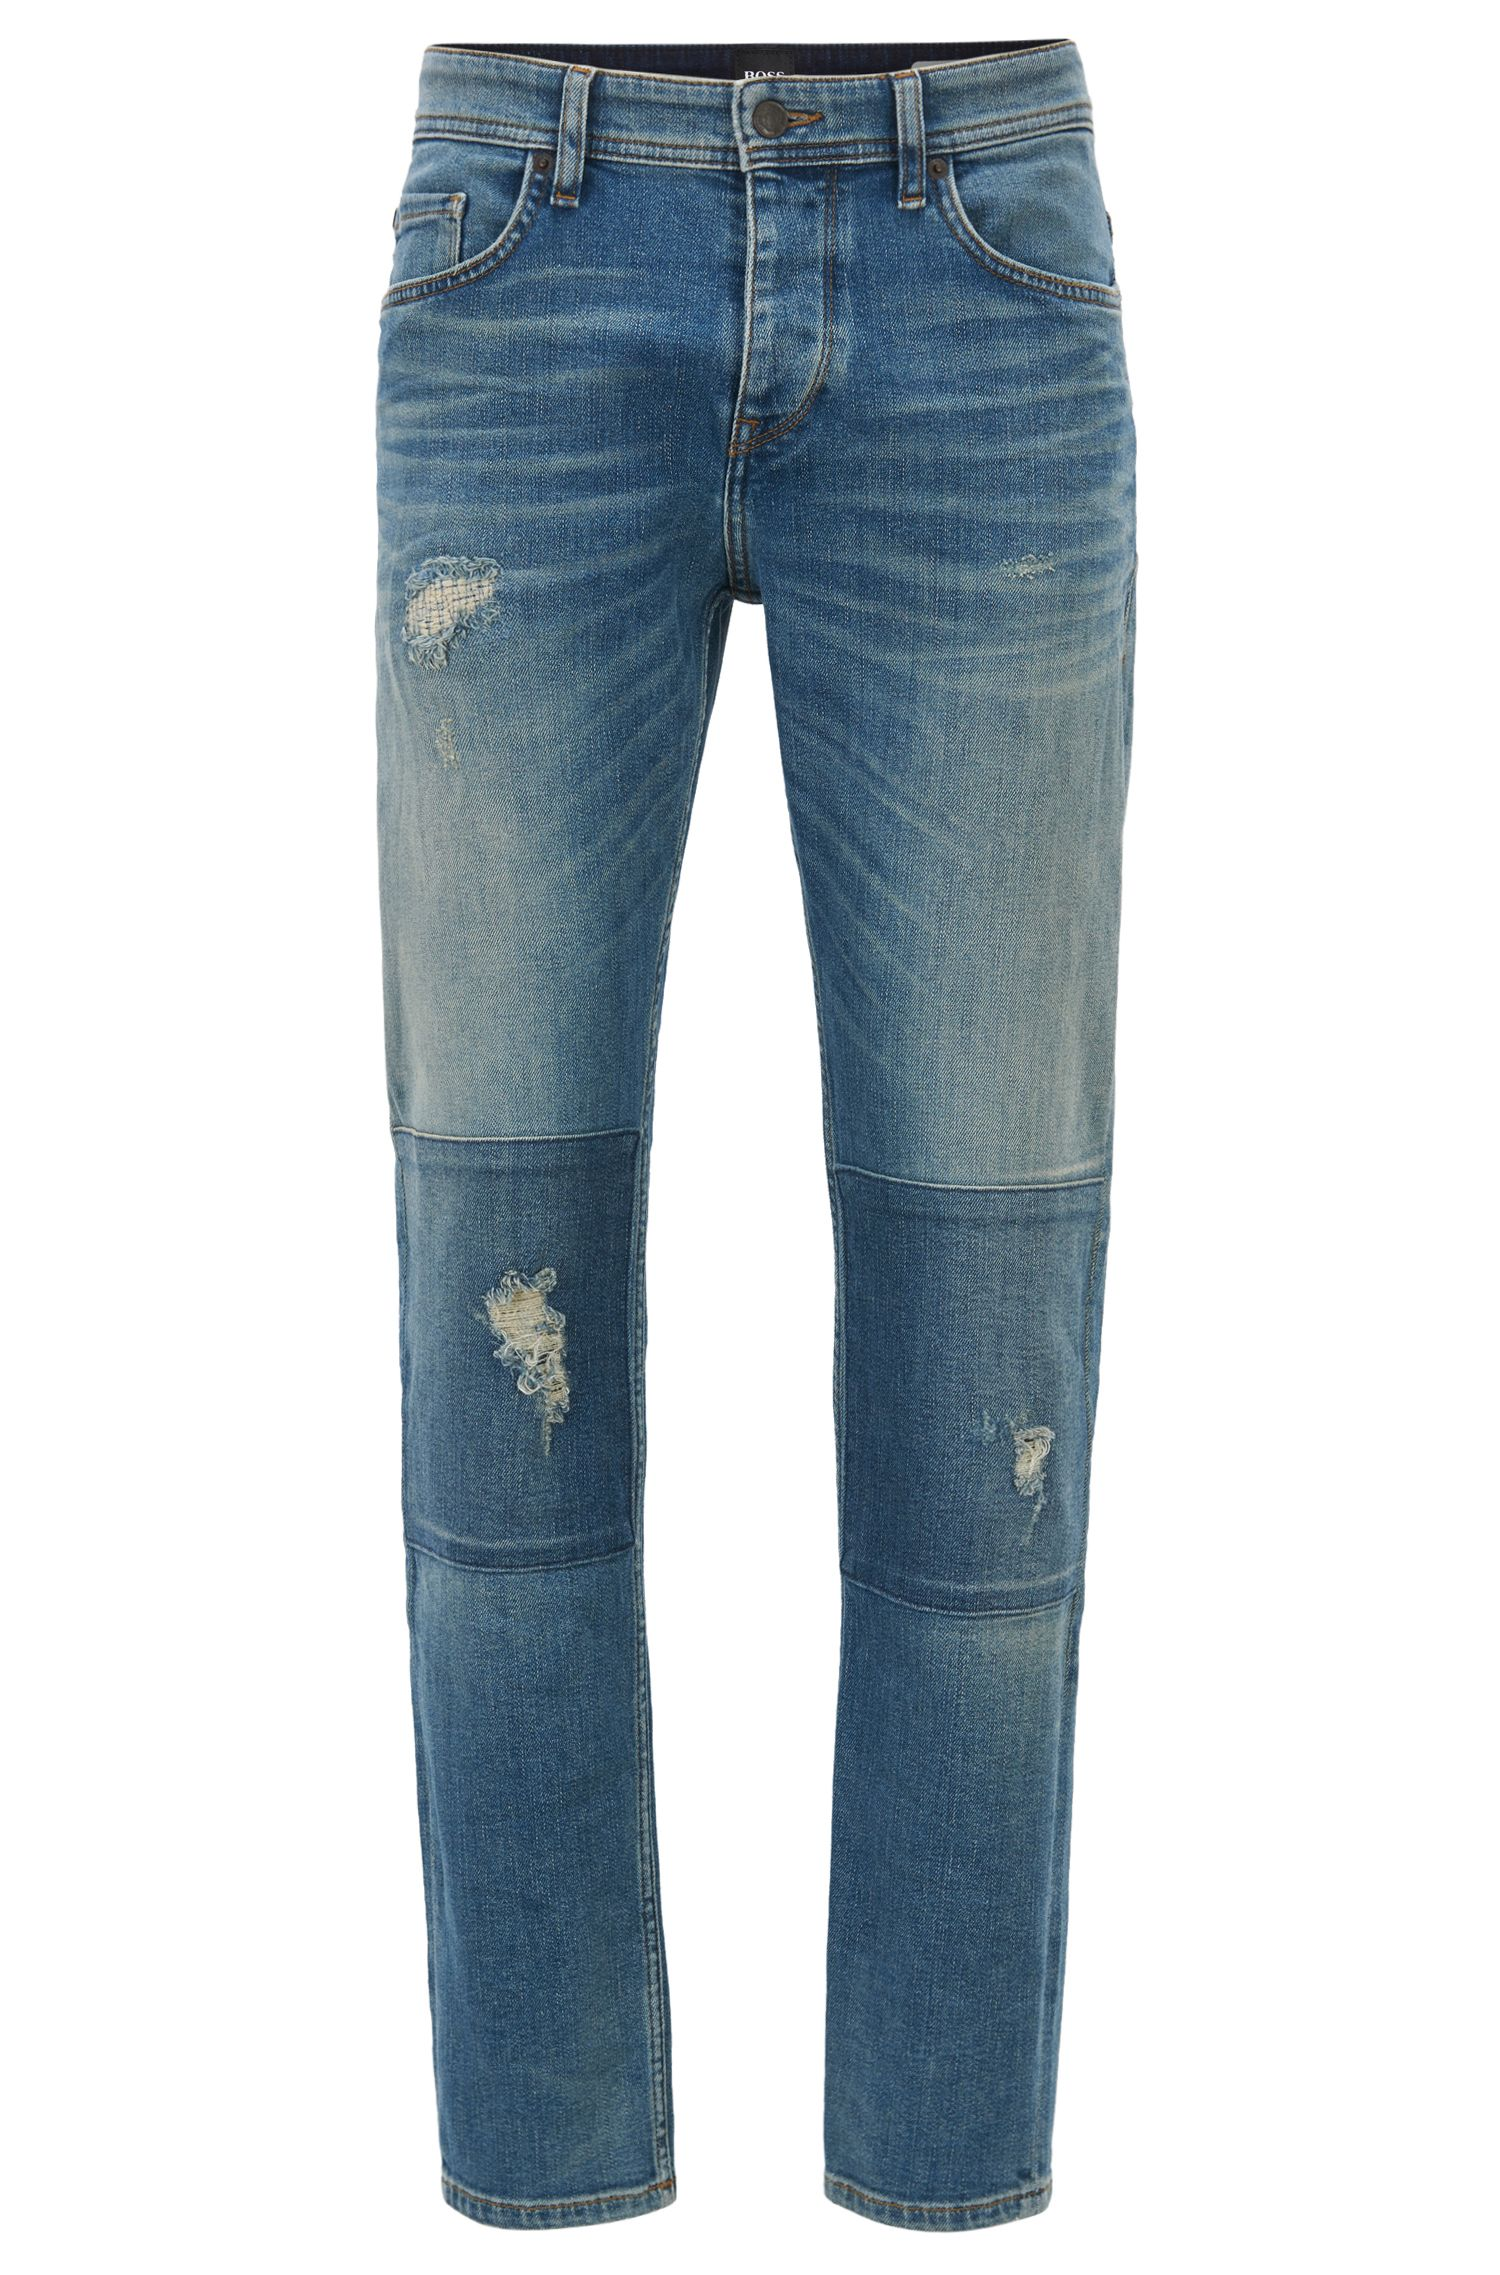 Vaqueros tapered fit en denim vintage de gran confort